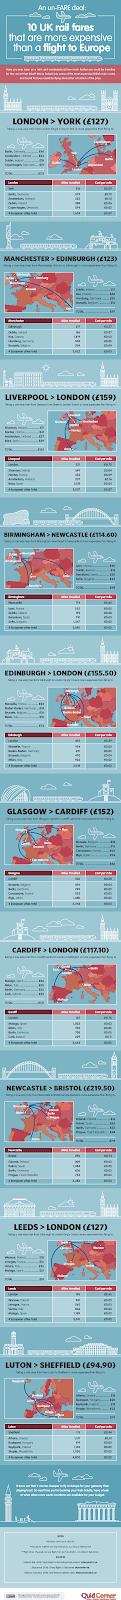 10 UK Rail Fares That Are More Expensive Than a Flight to Europe #infographic